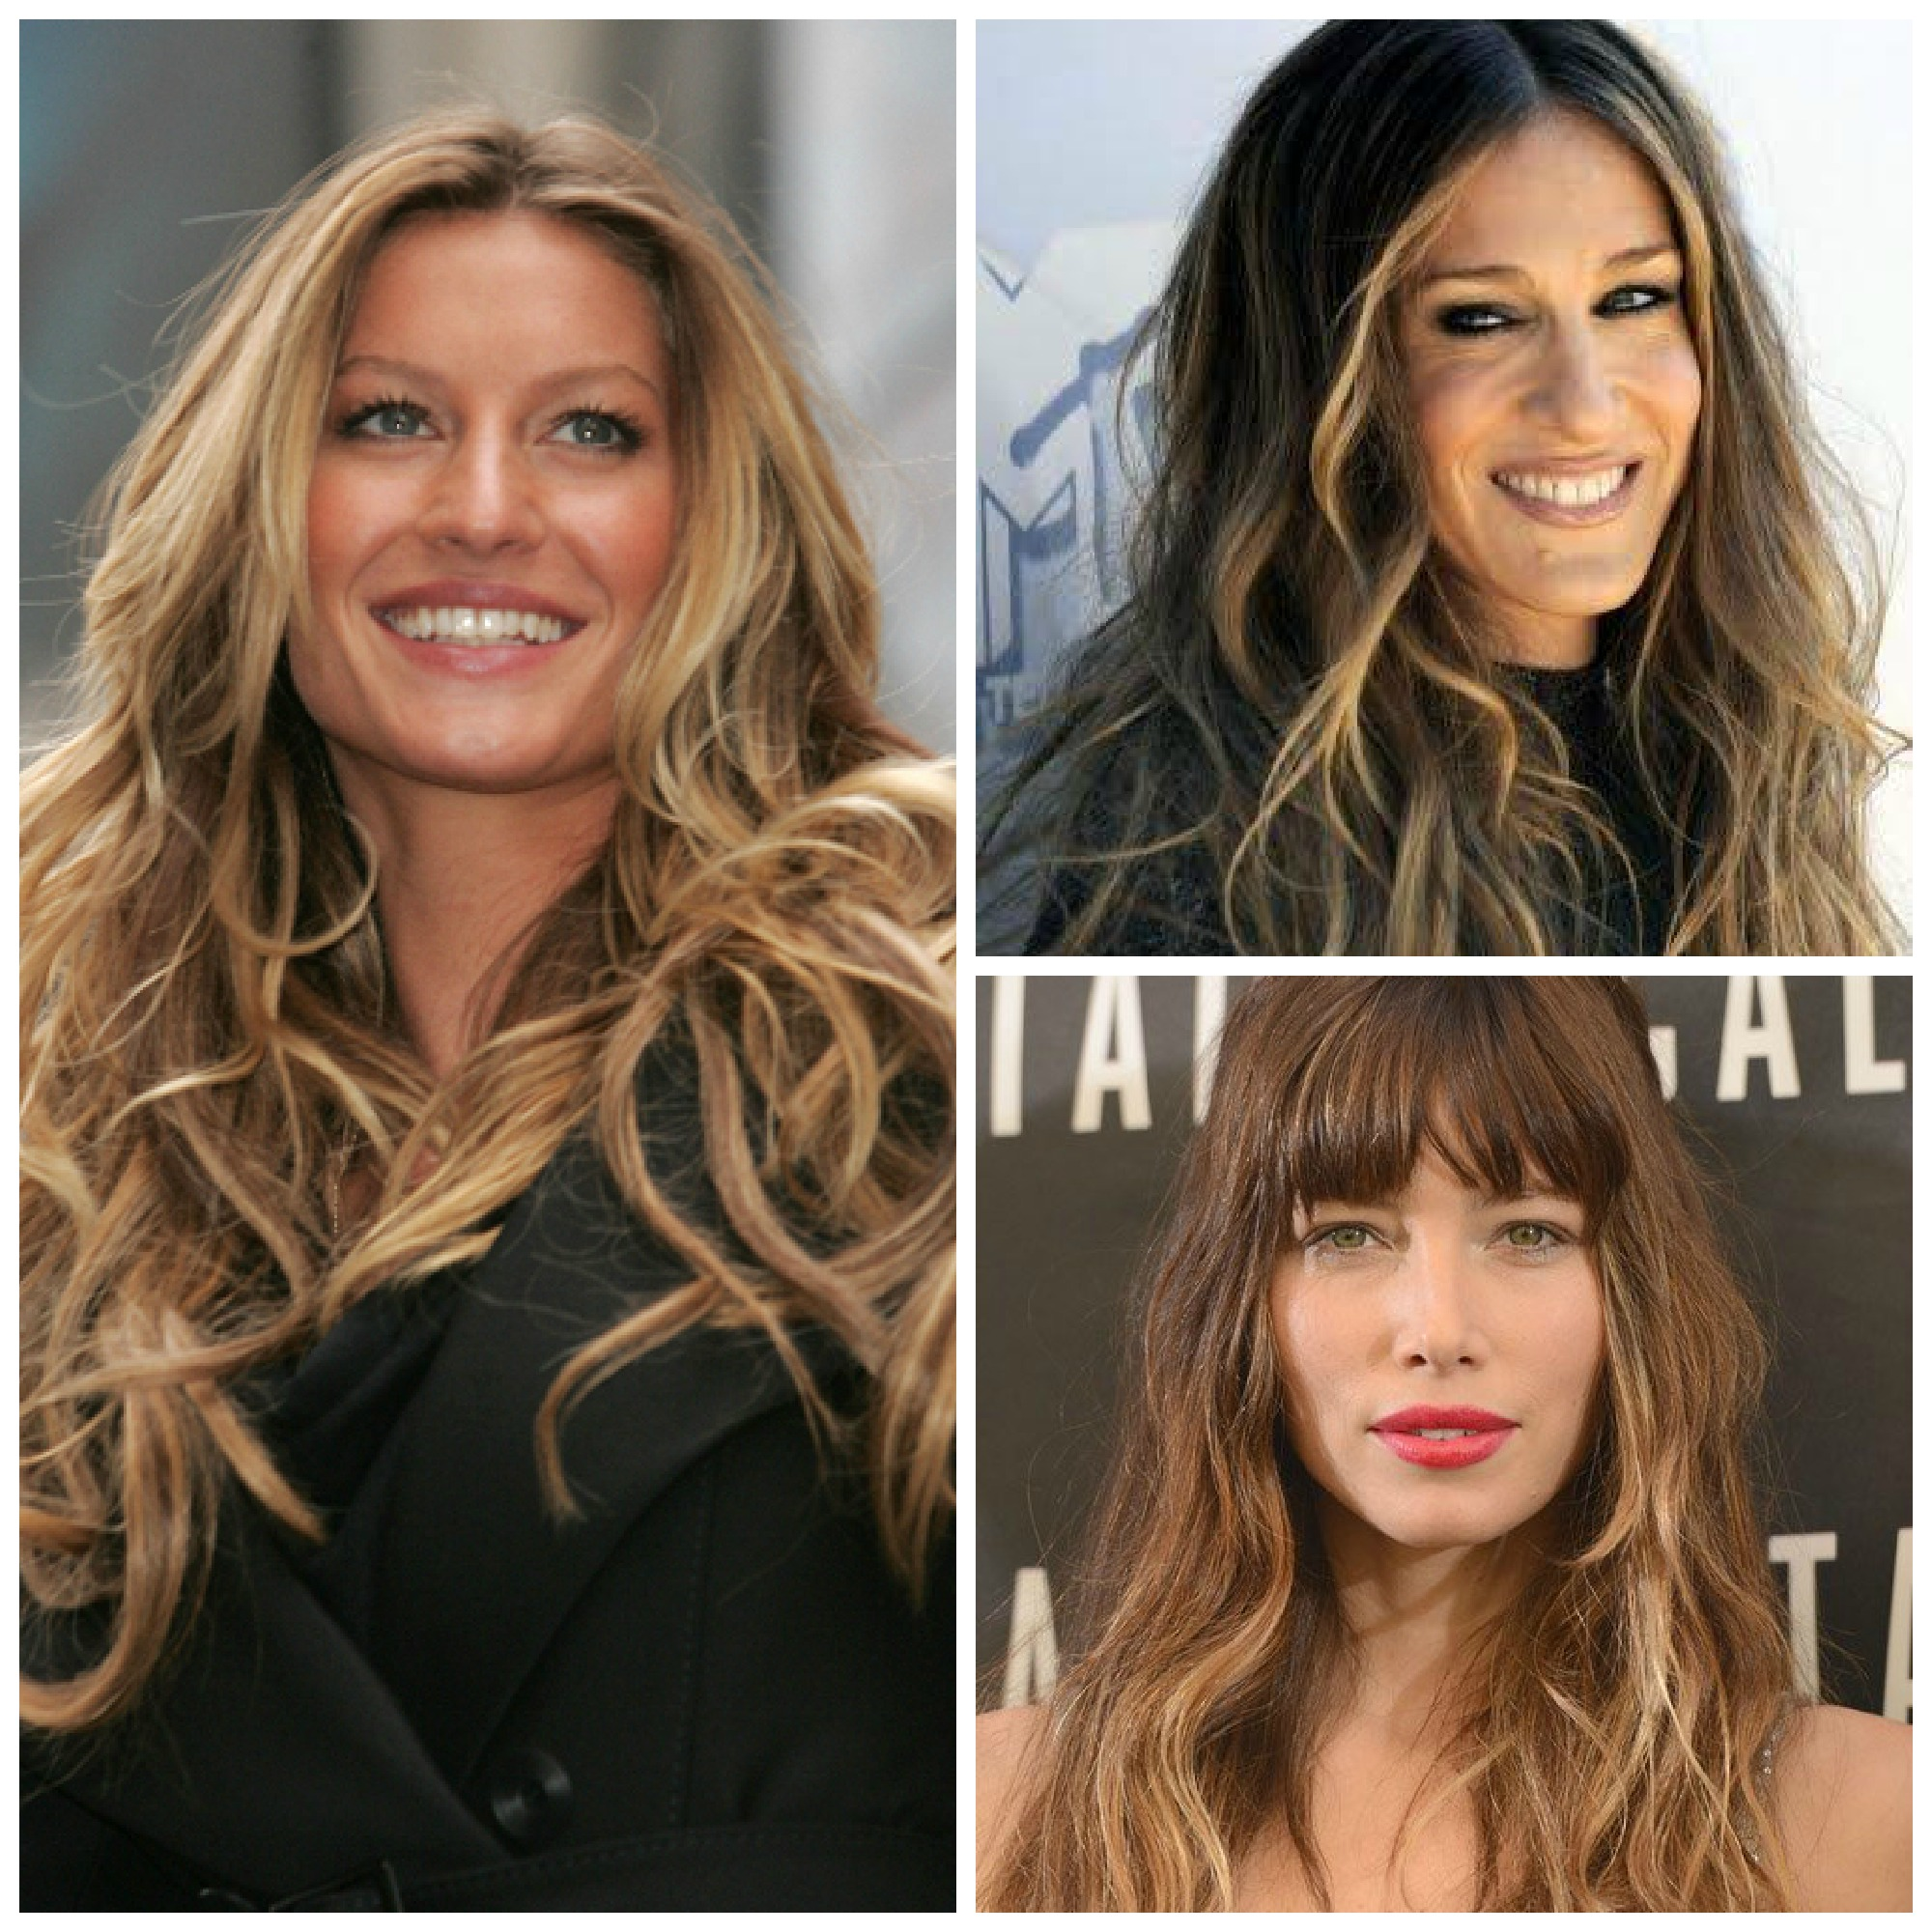 Las celebrities y las mechas californianas